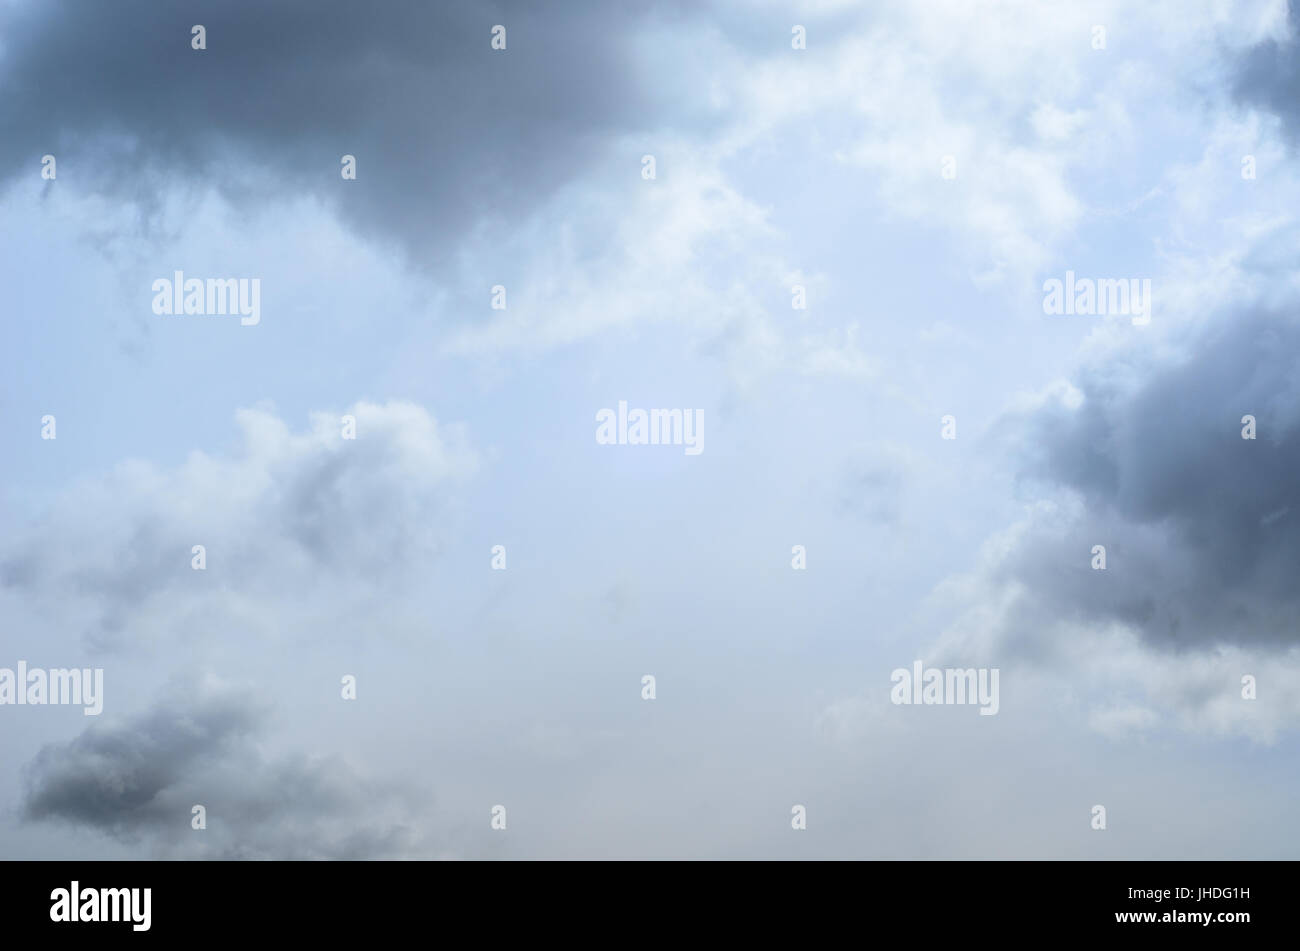 Mystical pale blue sky background with light, white and grey fluffy clouds. - Stock Image